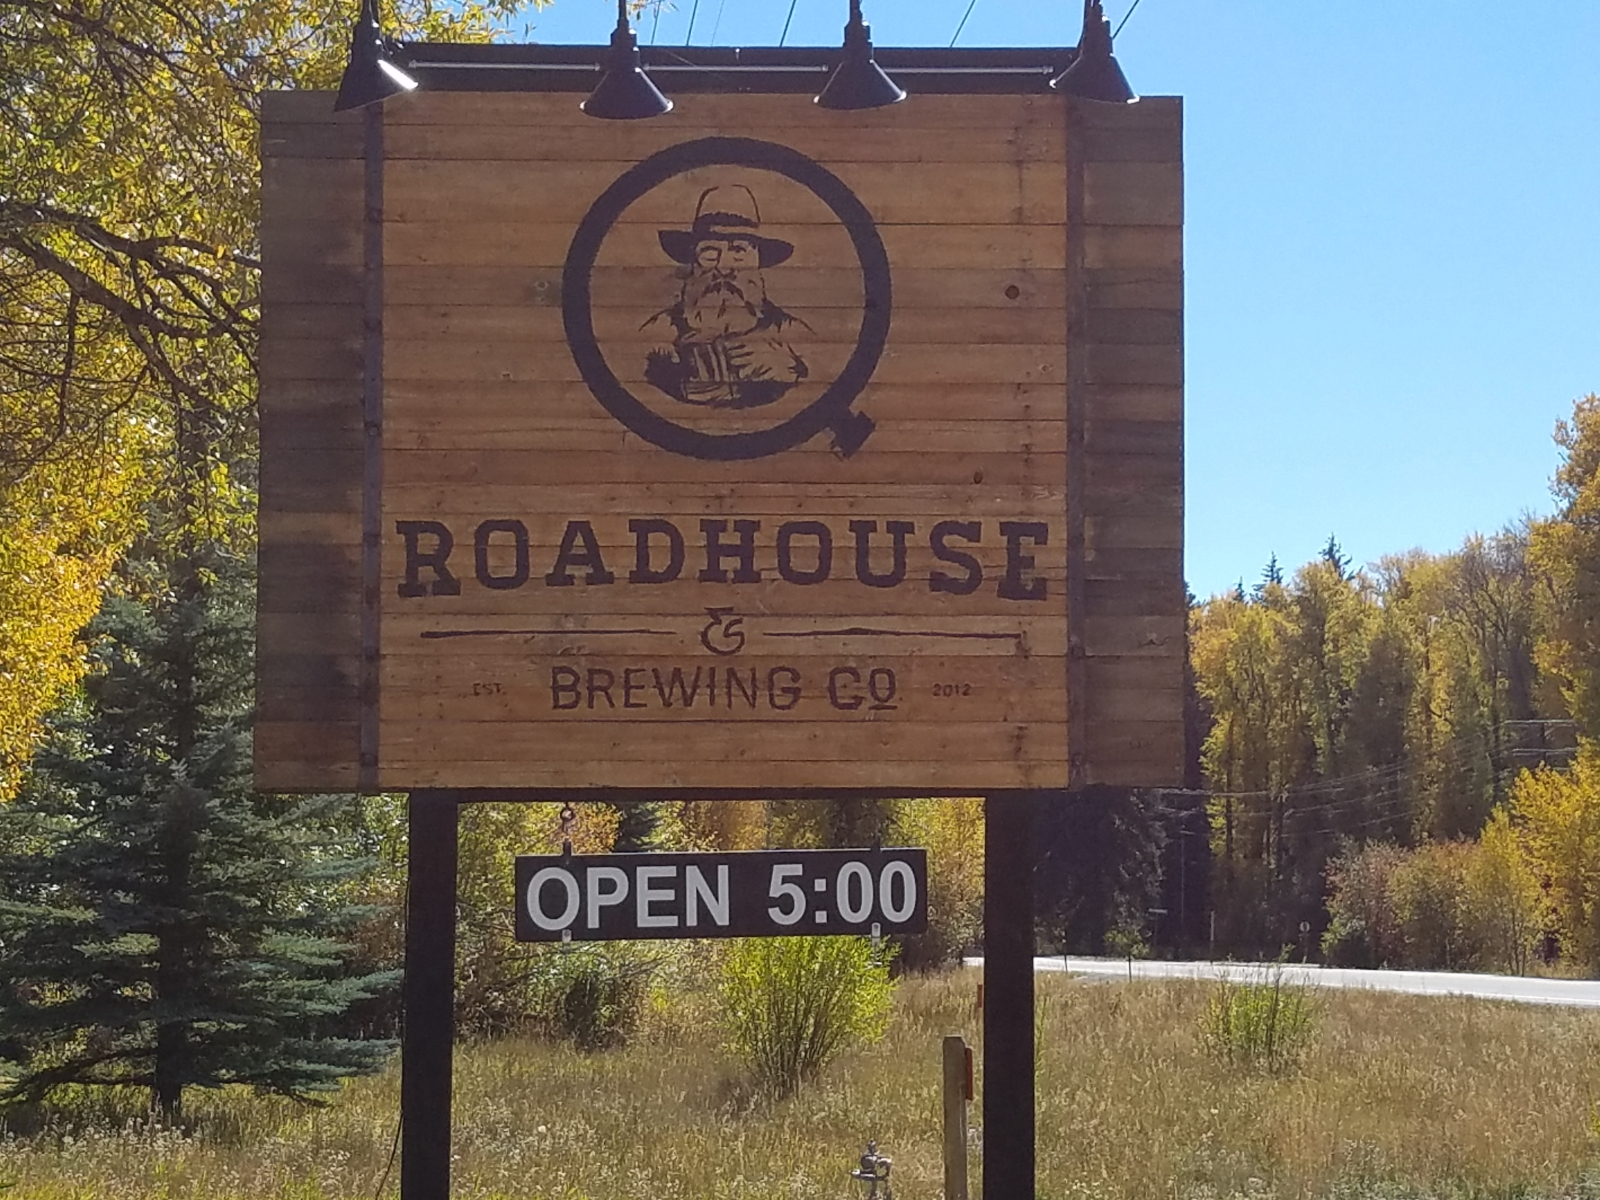 Q Roadhouse sign on highway